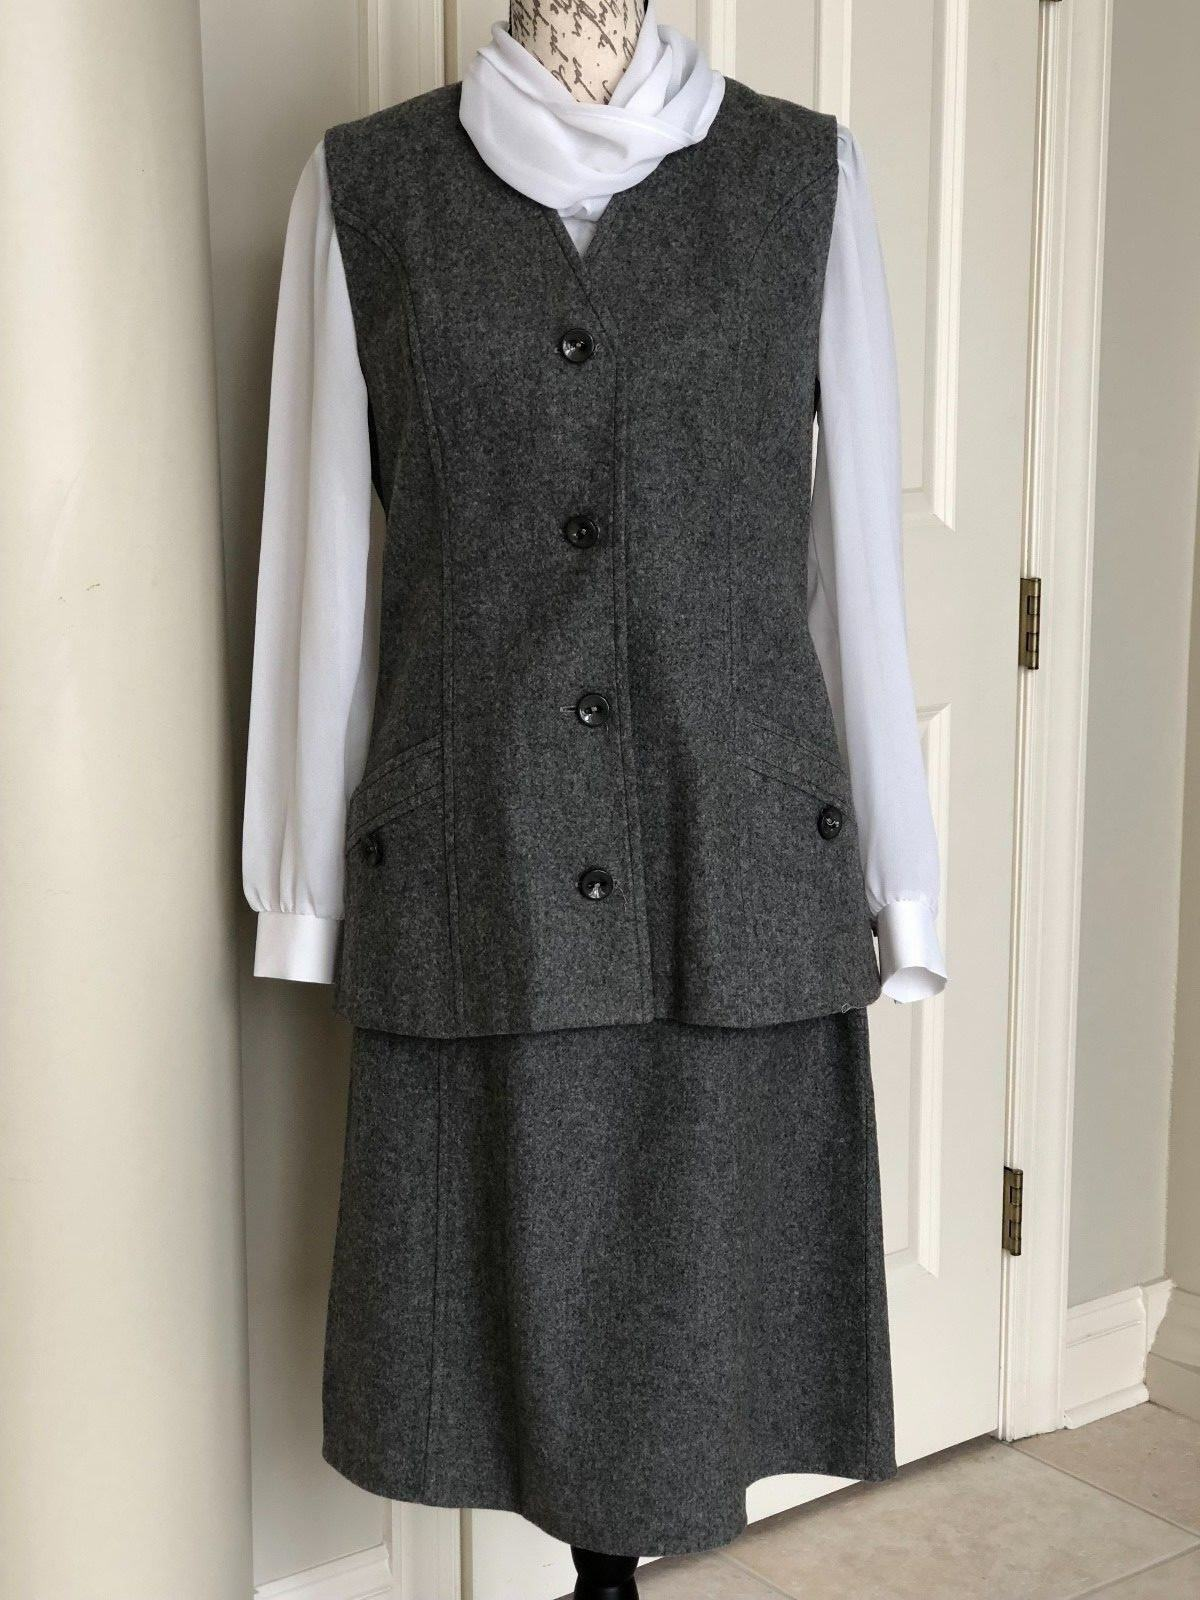 Windmoor Made in England 95% Wool Grey Lined Sleeveless Vest Suit Sz.8